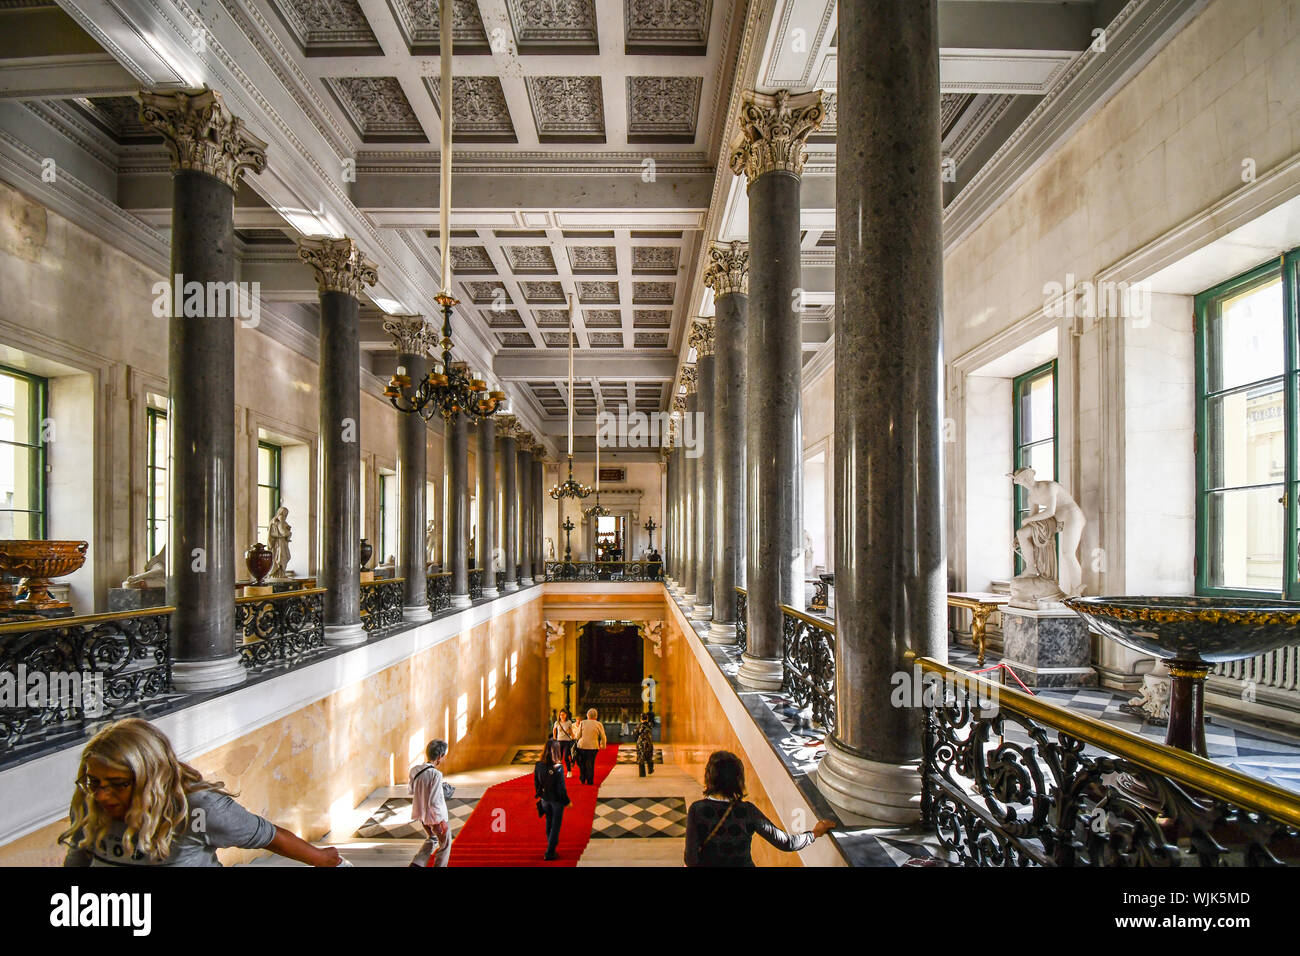 St. Petersburg, Russia - September 8 2018: The interior and hallway of the Winter Palace in the Hermitage Museum in St Petersburg Russia. Stock Photo